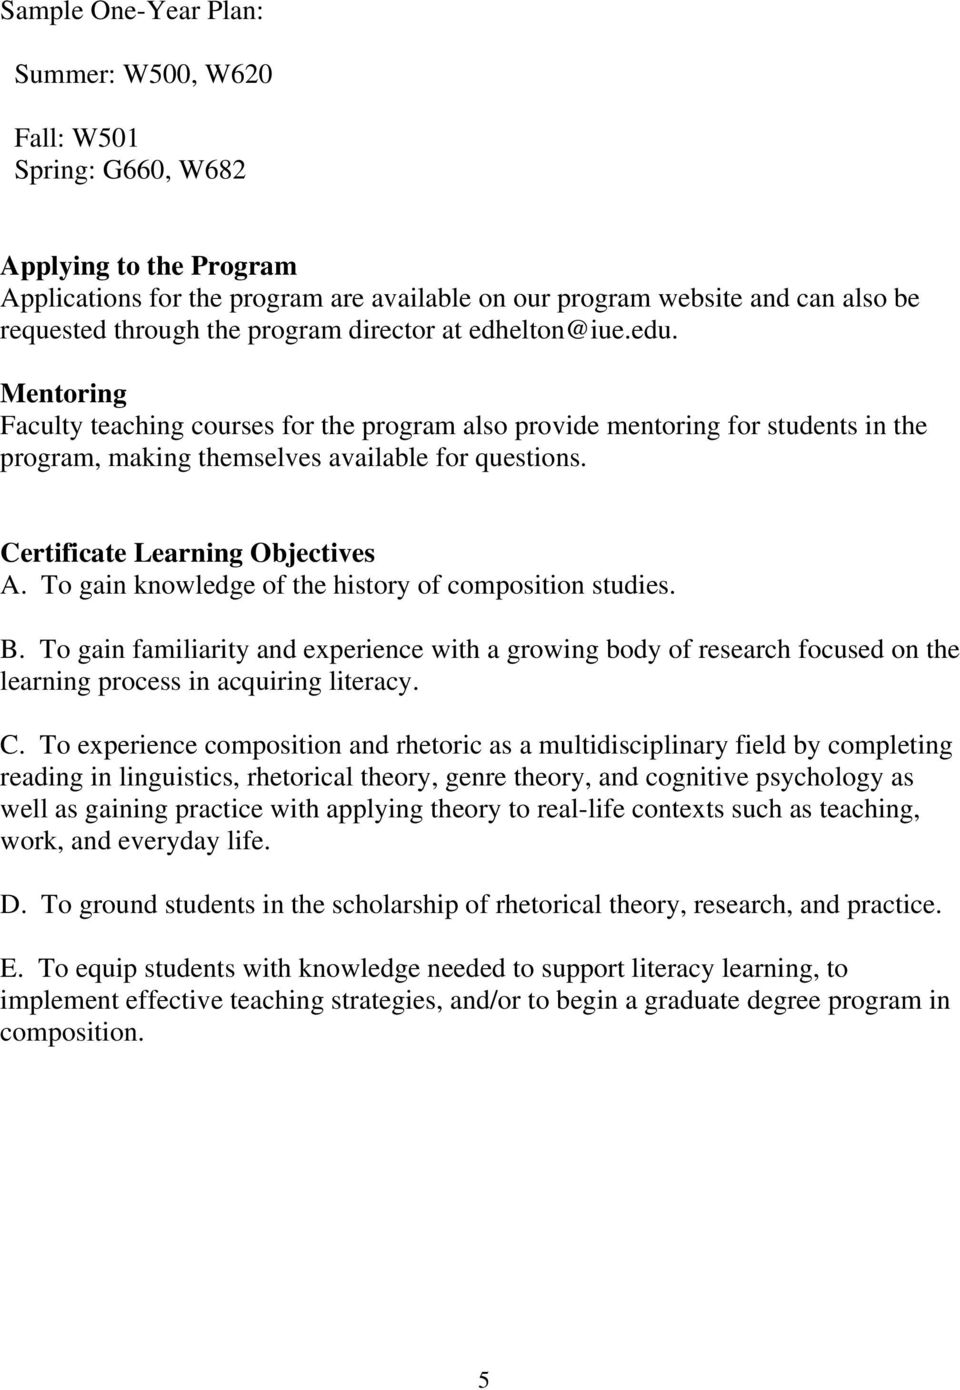 Certificate Learning Objectives A. To gain knowledge of the history of composition studies. B.